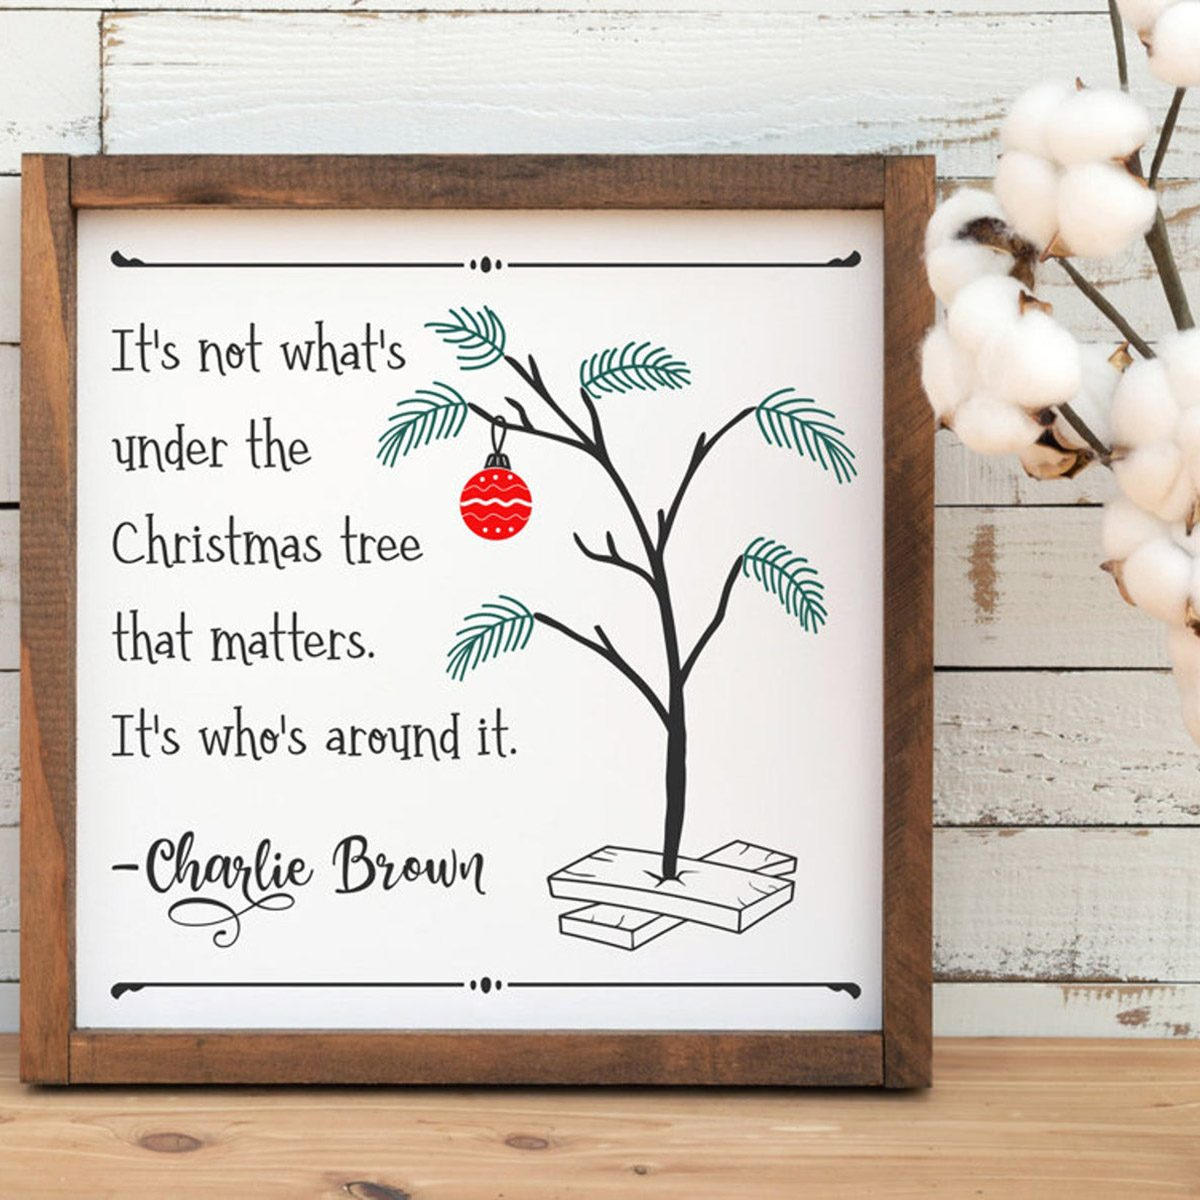 Charlie Brown Christmas Party, quote